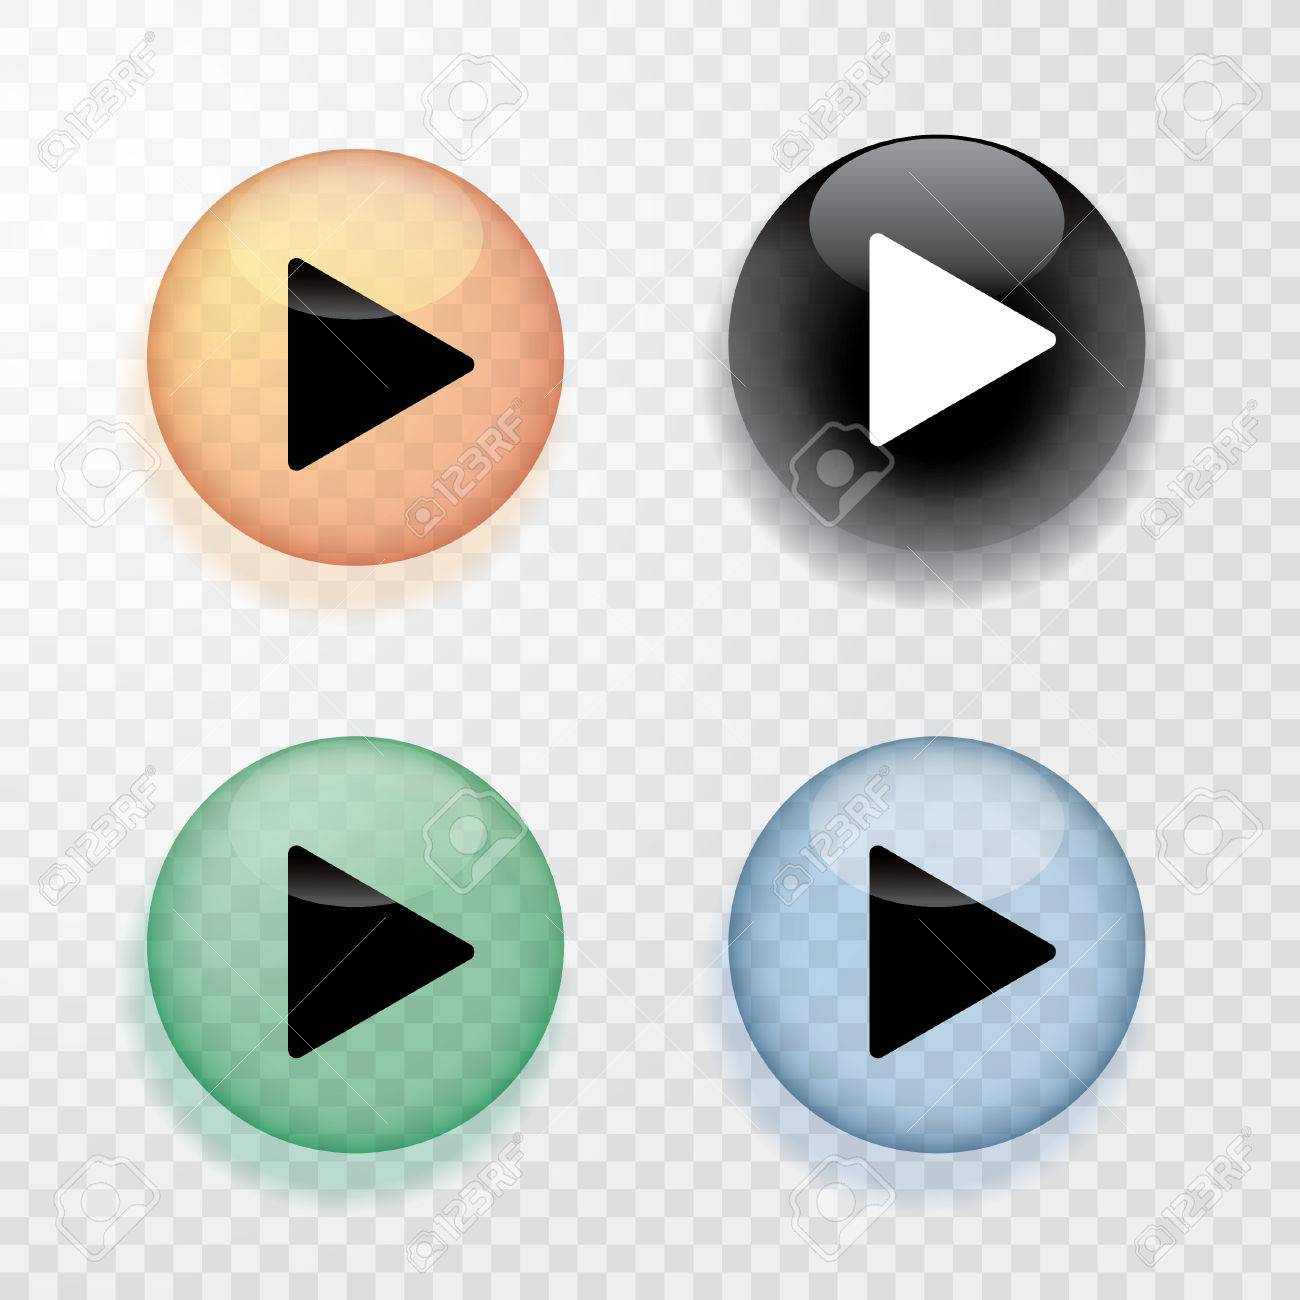 collection of four transparent play buttons with shadow - 64522006